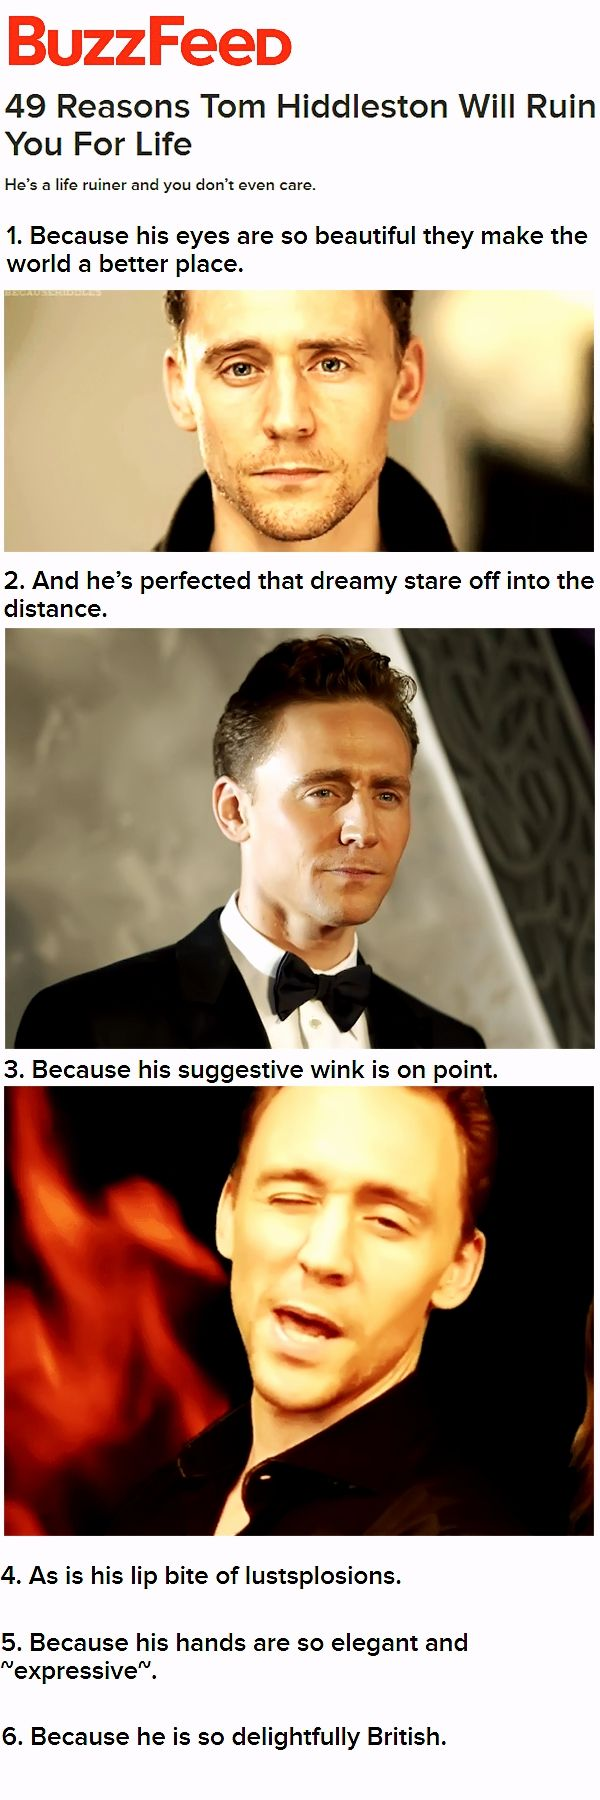 http://www.buzzfeed.com/jennaguillaume/reasons-tom-hiddleston-will-ruin-you-for-life